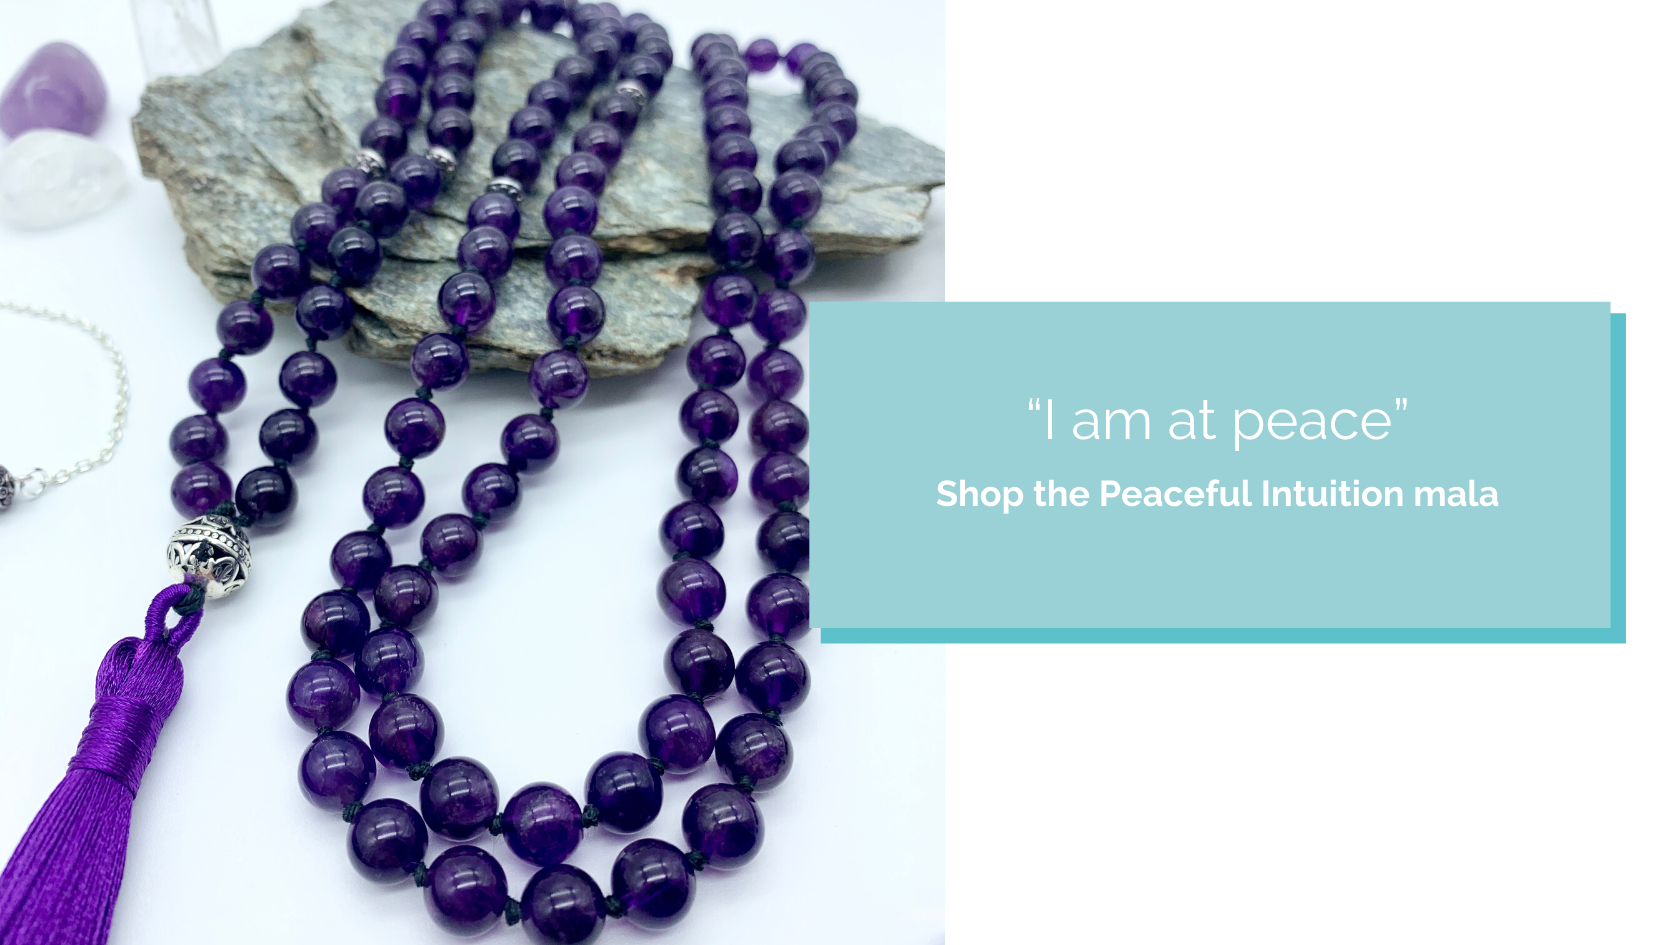 Shop the Peaceful Intuition Mala